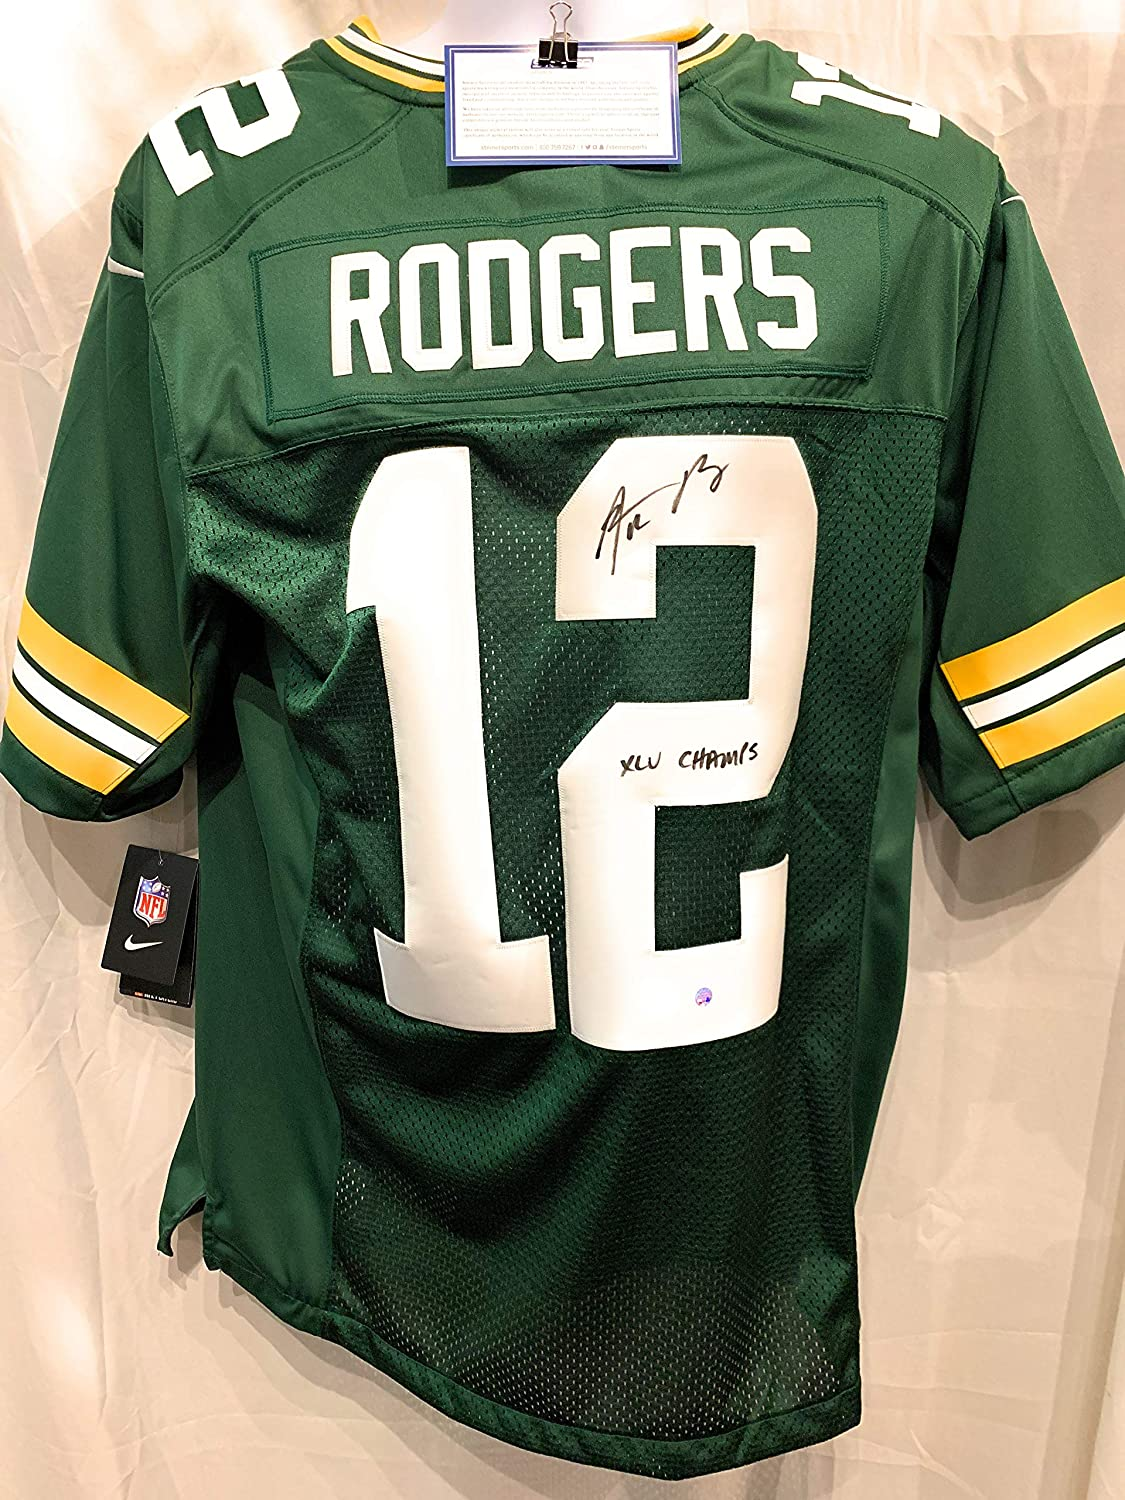 the best attitude 3b31c 121a7 Aaron Rodgers Green Bay Packers Signed Autograph Nike Embroidered Game  Jersey SUPER BOWL XLV CHAMPS INSCRIBED Steiner Sports Certified